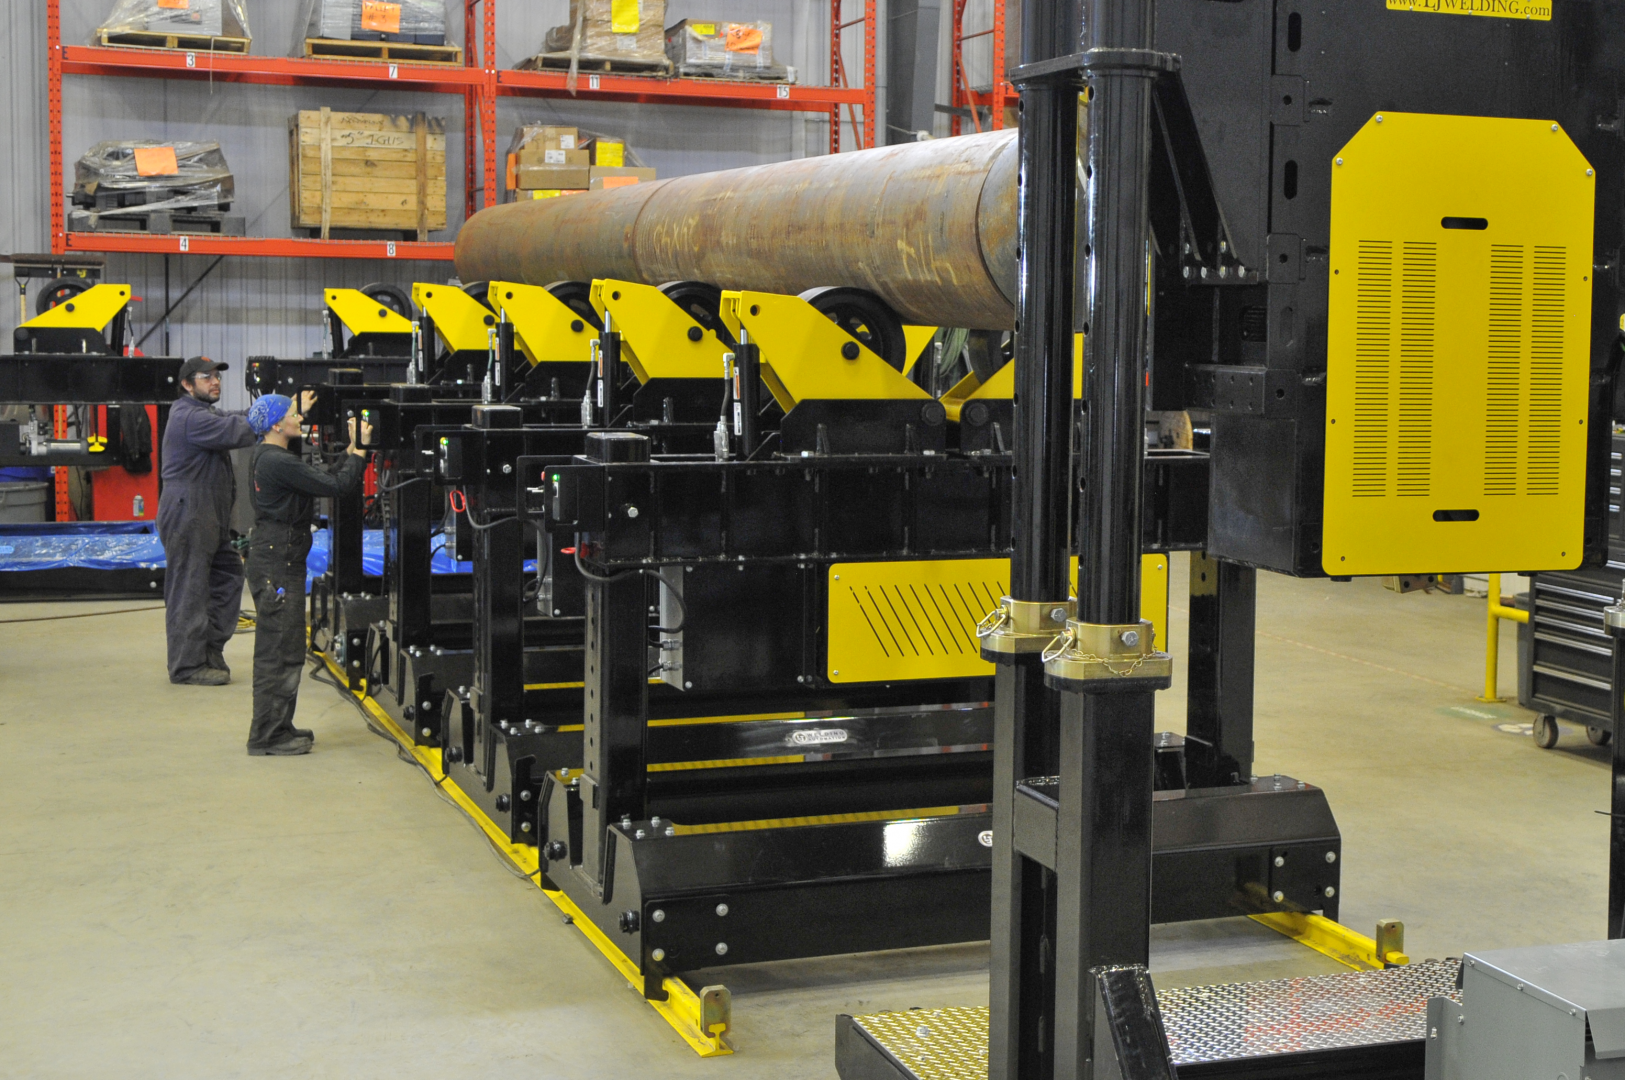 pipe double jointing system by LJ Welding